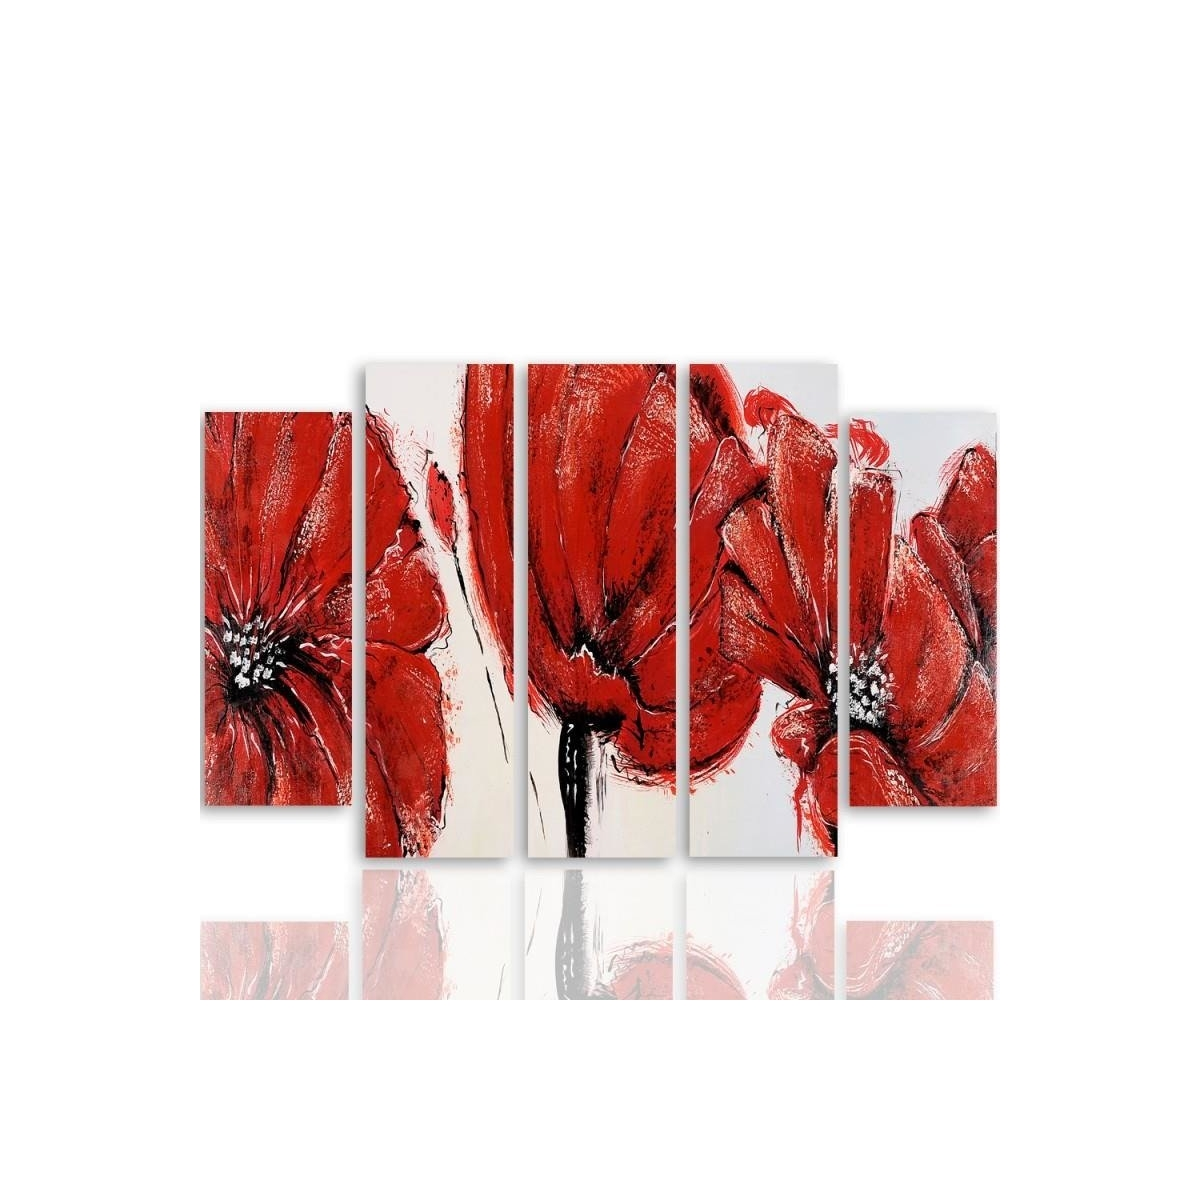 Five Part Picture On Canvas, Pentaptych, Type B, Red Flowers100x150